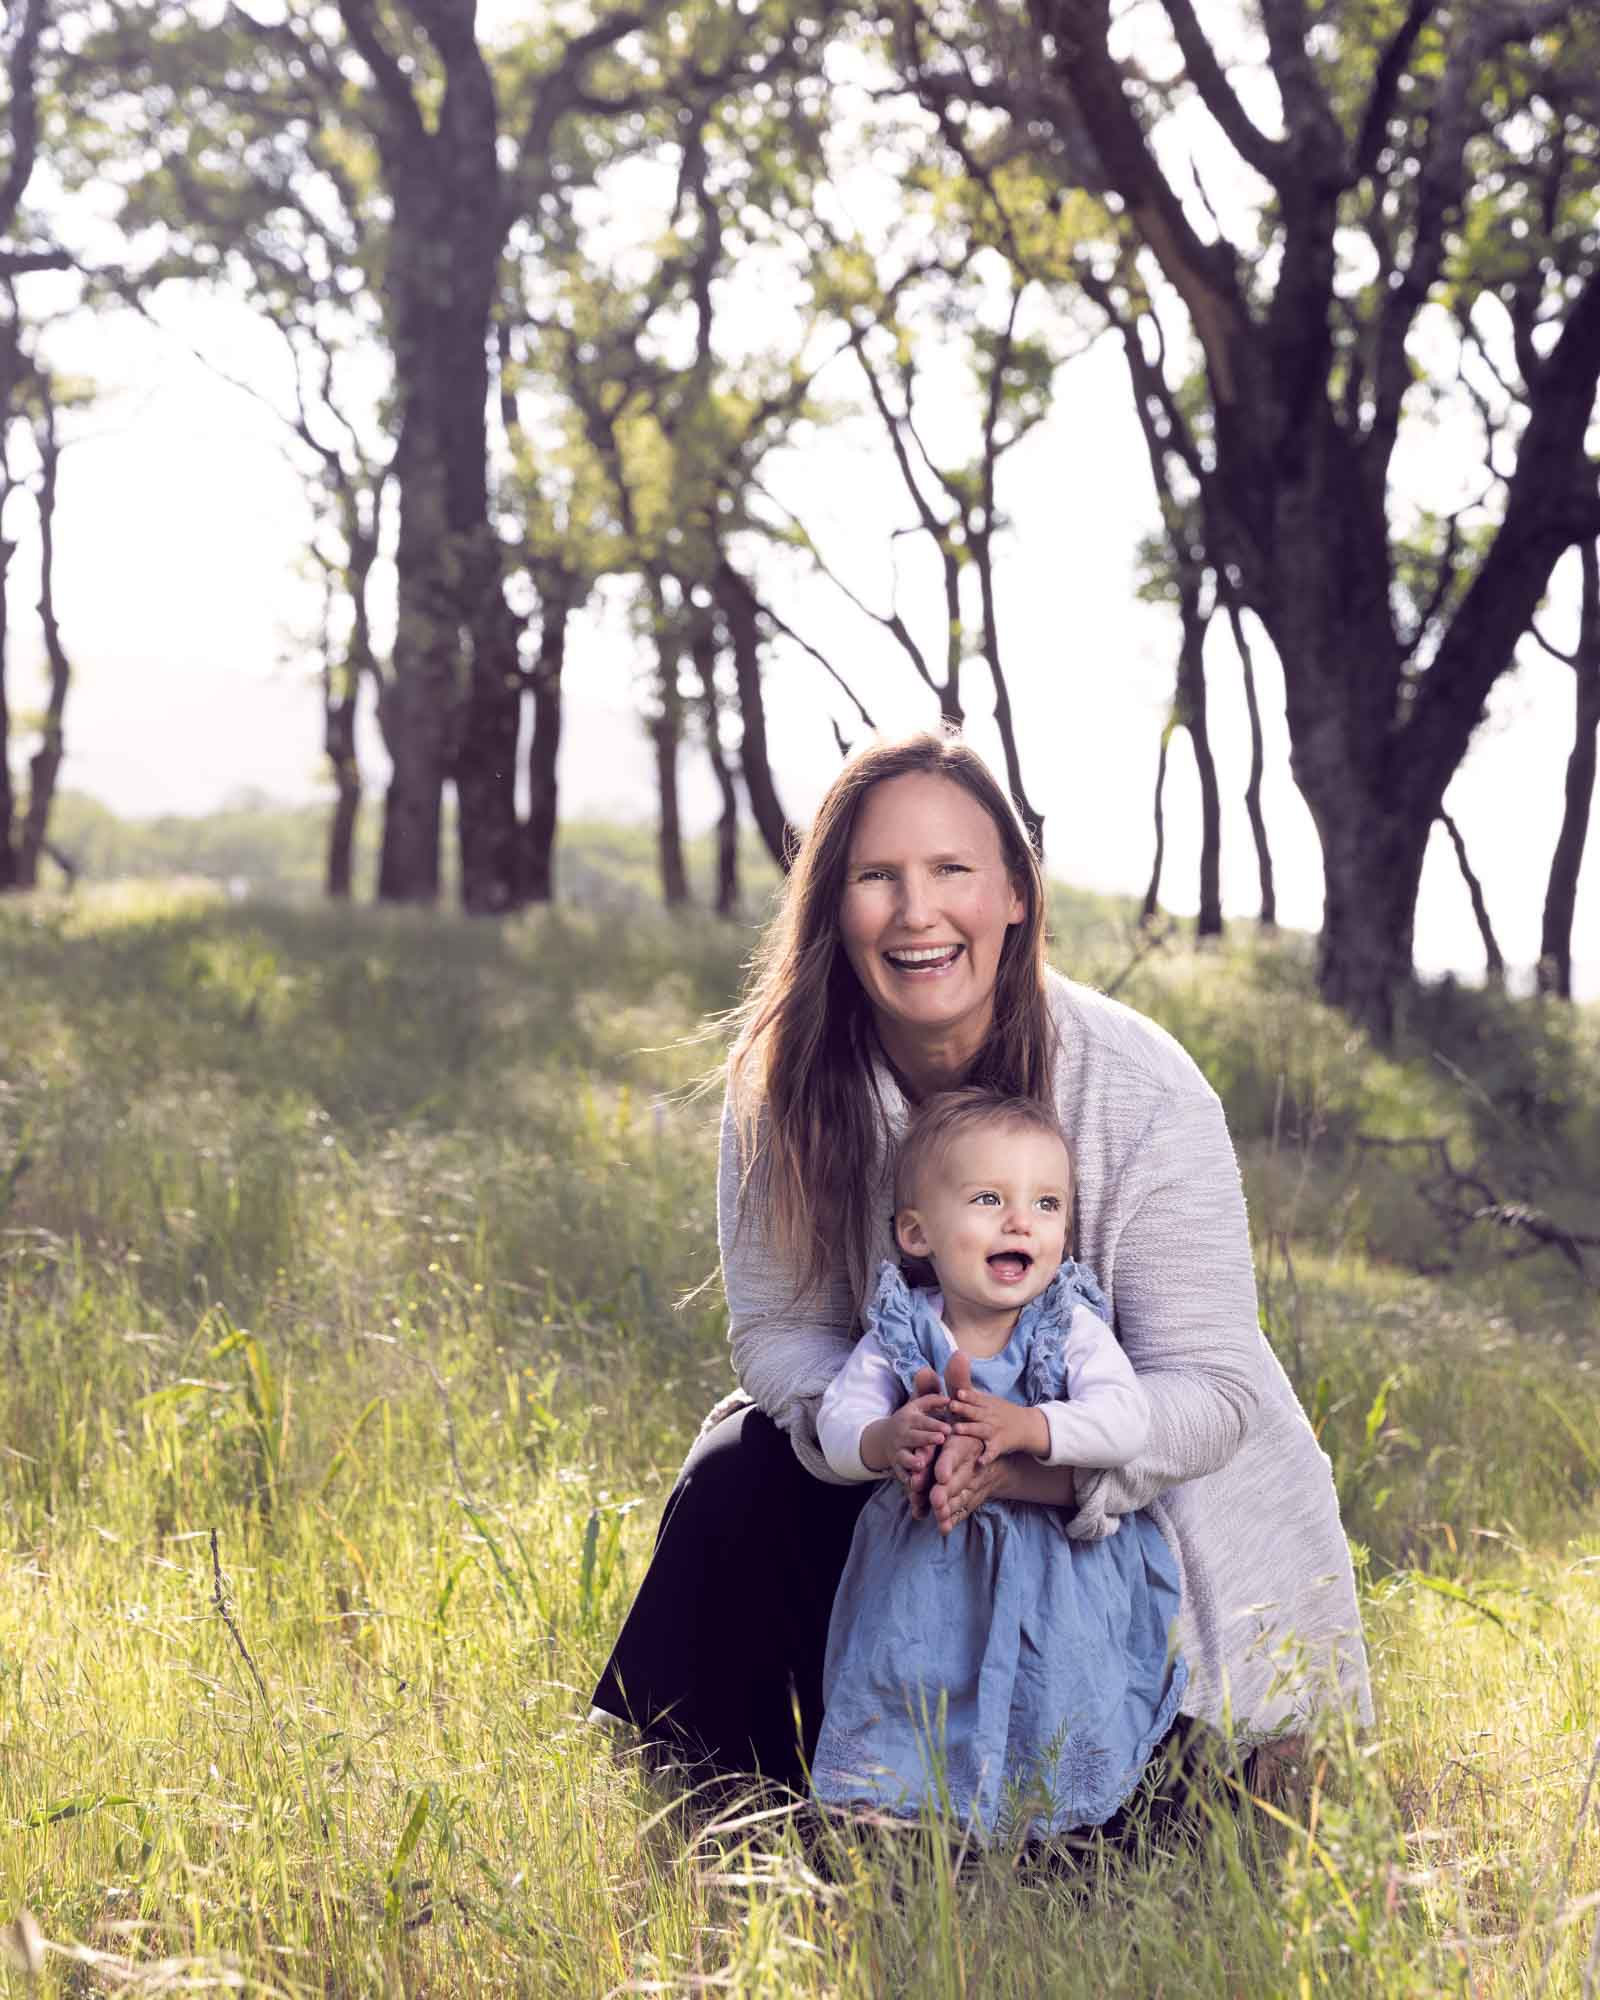 Children's portraits of a mom with her toddler baby girl in a bay area oak forest